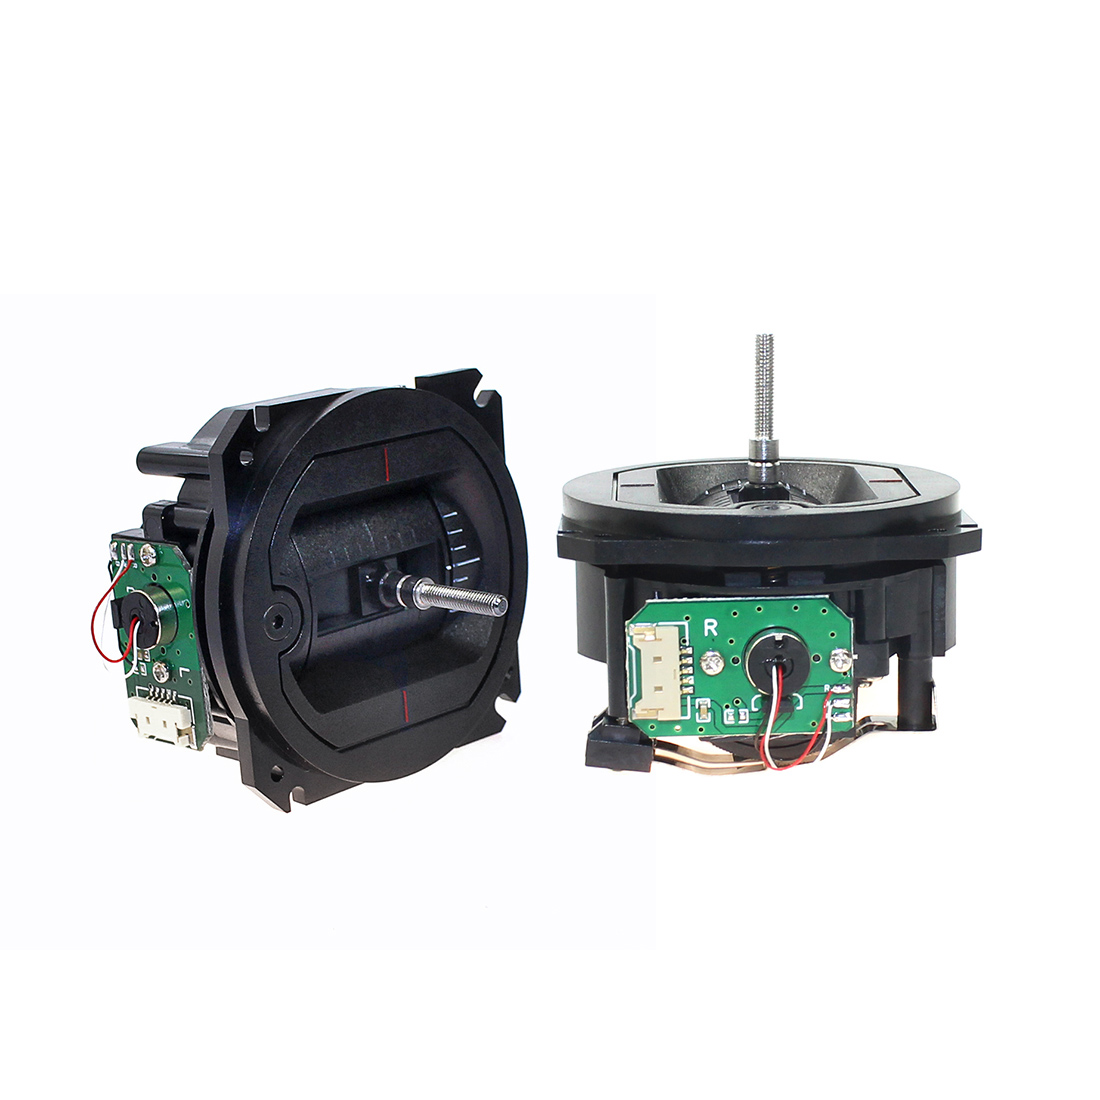 2Pcs Jumper-XYZ Hall Sensor Gimbal For Jumper T16 Pro Plus Radios Transmitter Upgrade T16 Series Sensor Gimbal Repairing Kit